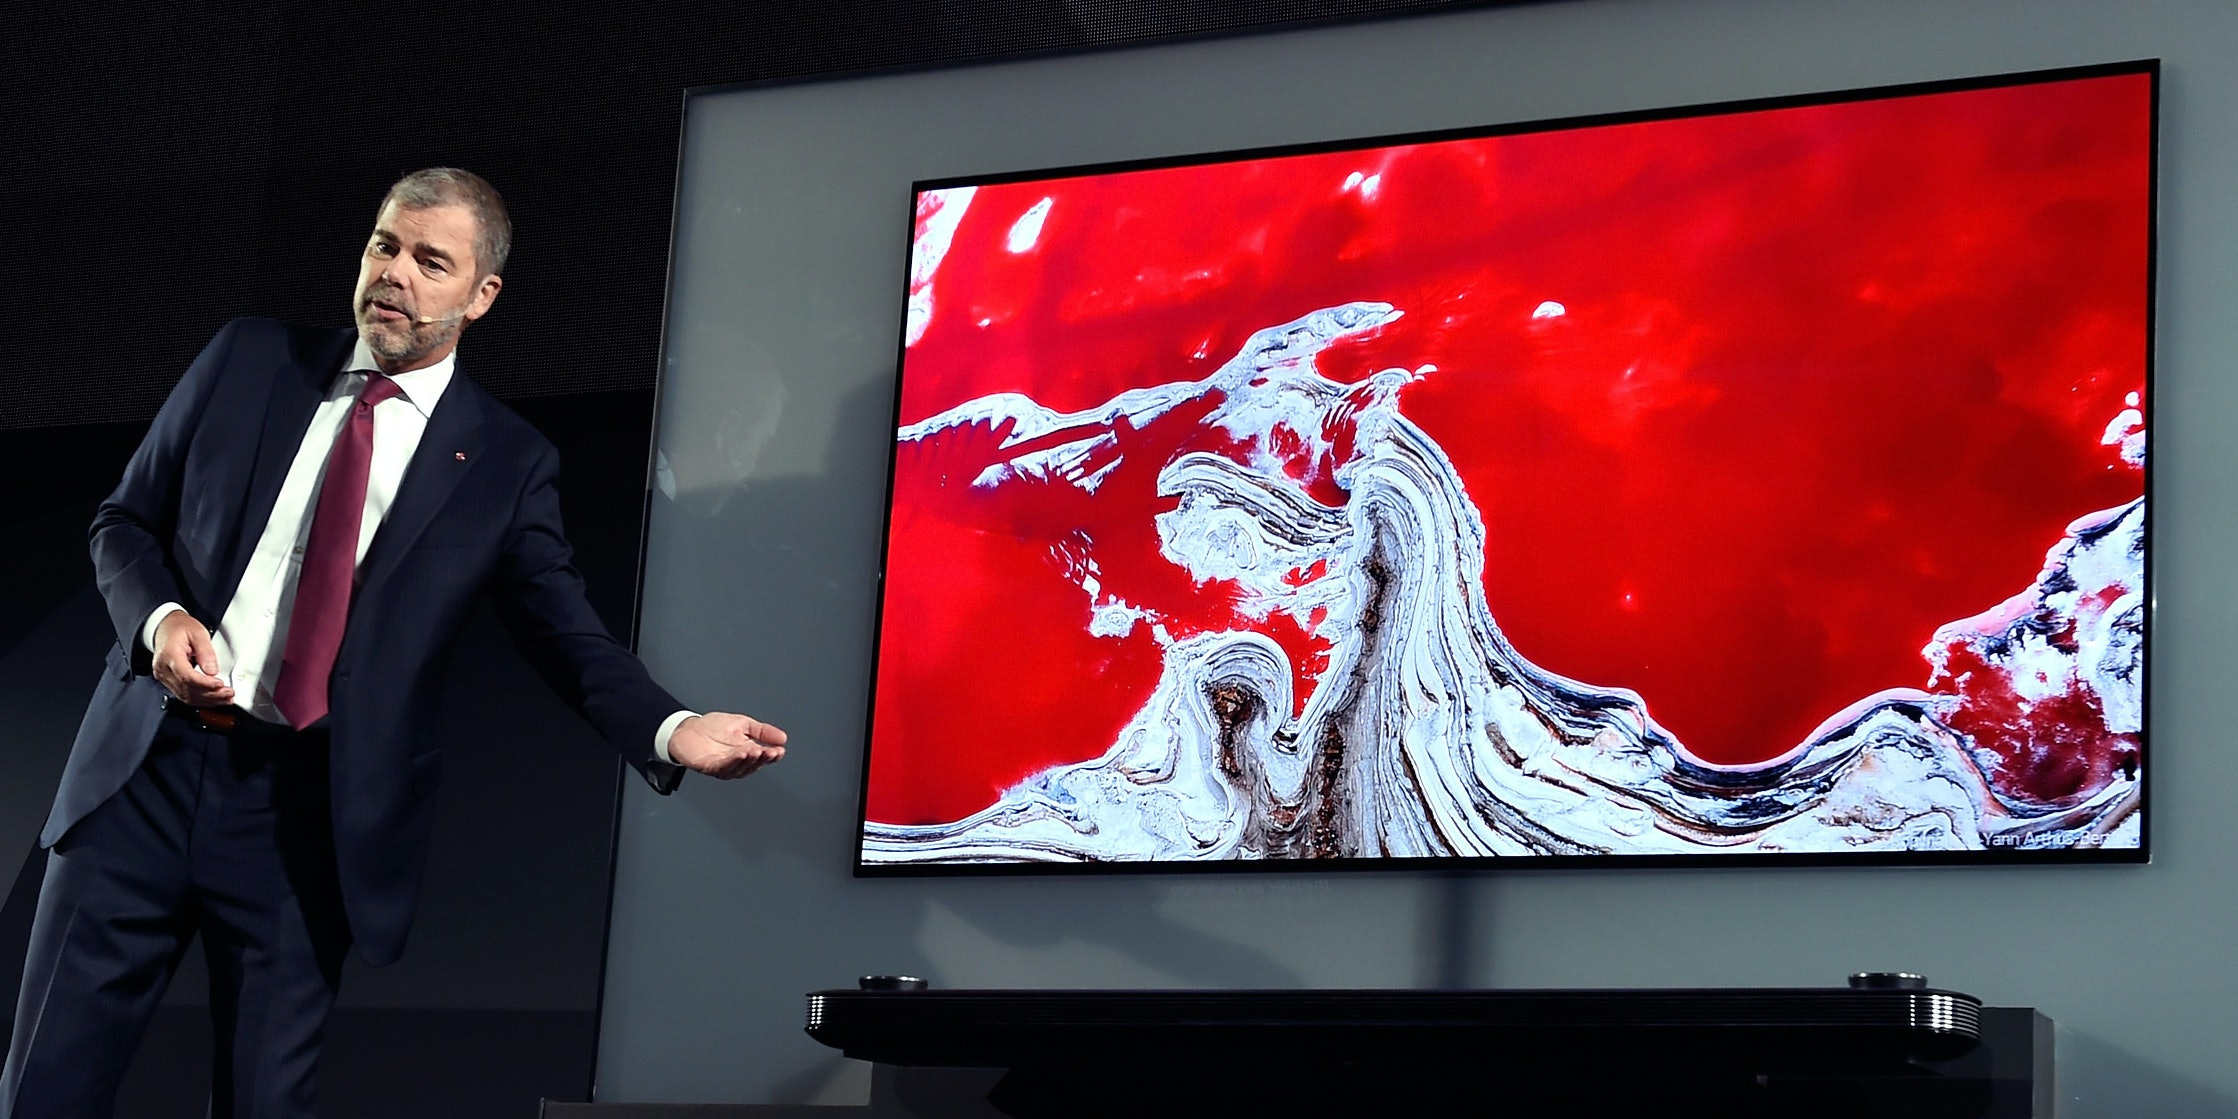 LAS VEGAS, NV - JANUARY 04:  LG Electronics USA Vice President of Marketing David VanderWaal displays the LG Signature OLED TV W during a LG press event for CES 2017 at the Mandalay Bay Convention Center on January 4, 2017 in Las Vegas, Nevada. CES, the world's largest annual consumer technology trade show, runs from January 5-8 and is expected to feature 3,800 exhibitors showing off their latest products and services to more than 165,000 attendees.  (Photo by David Becker/Getty Images)